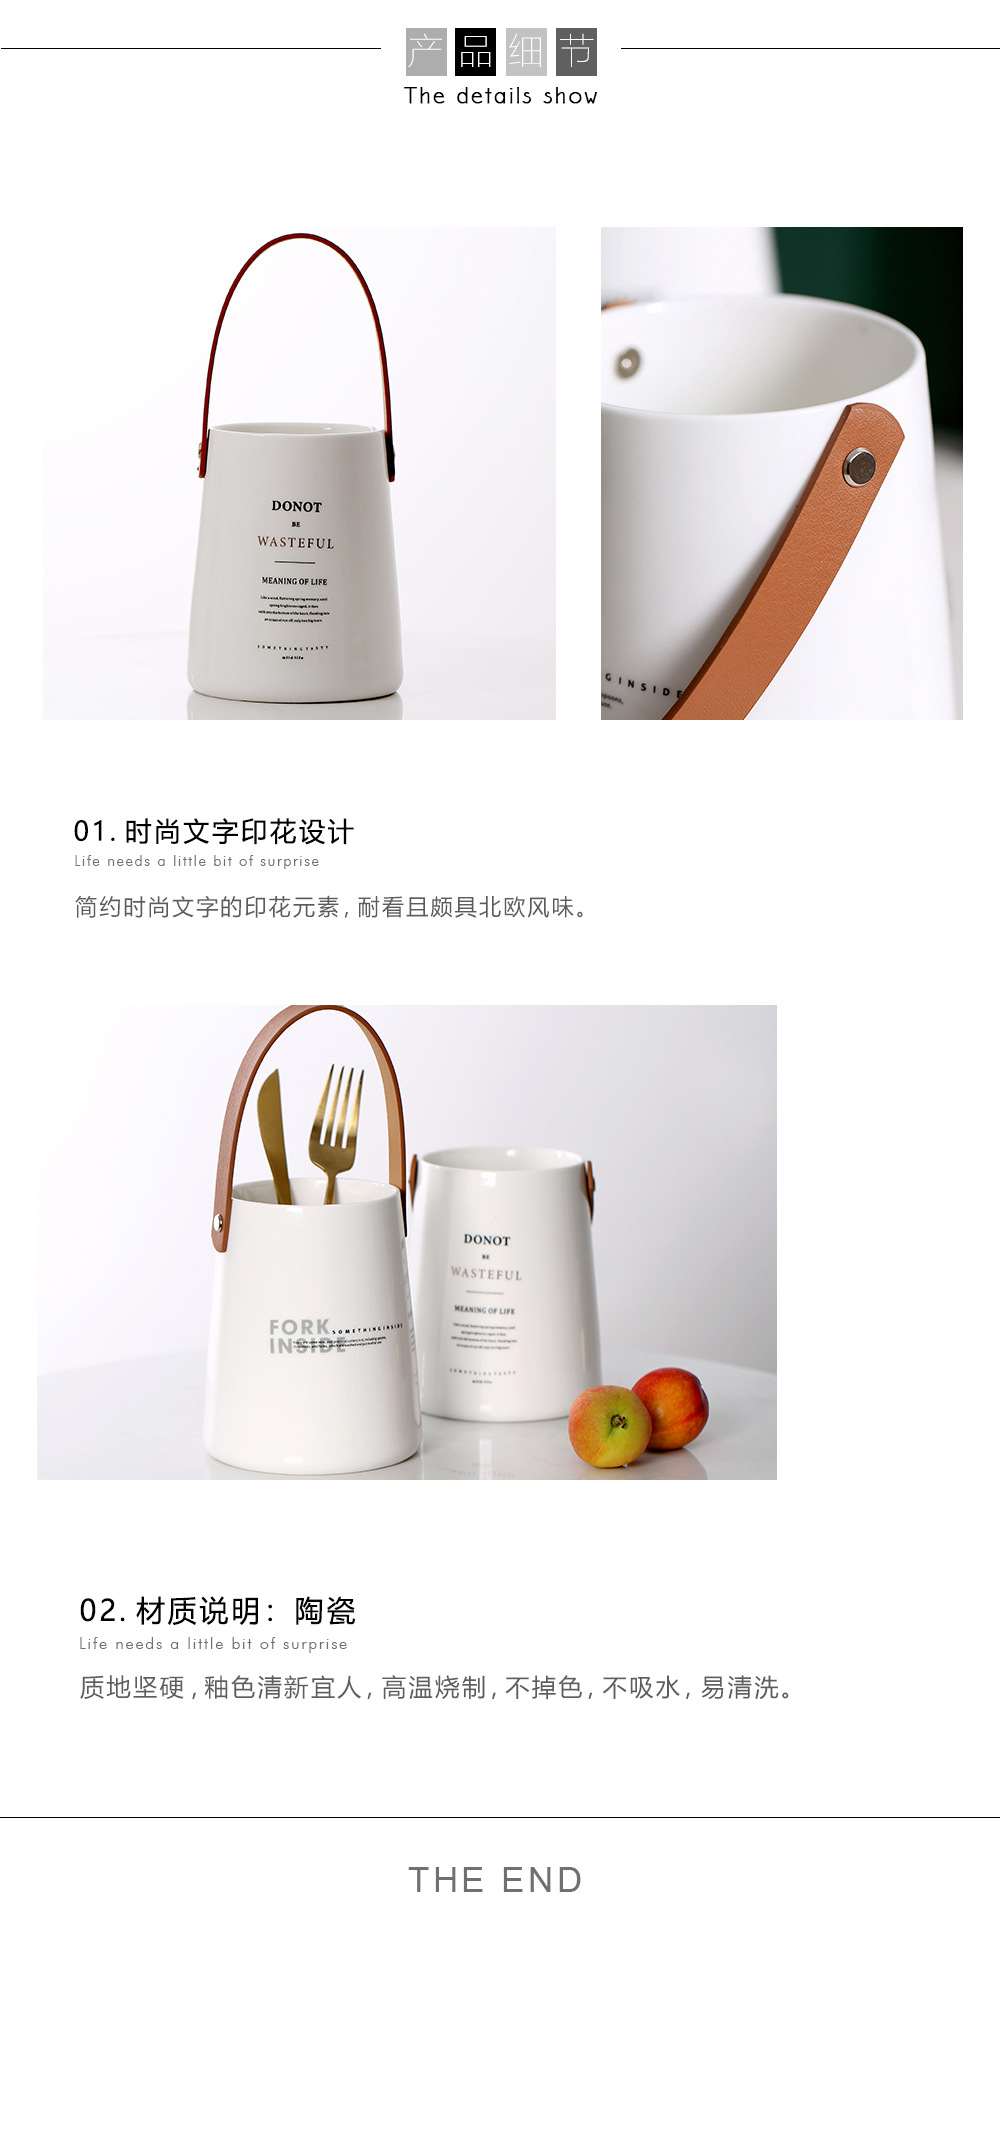 The Nordic leather handle household utensils canister creative contracted The kitchen knife and fork spoon The receive tube ceramic chopsticks cage